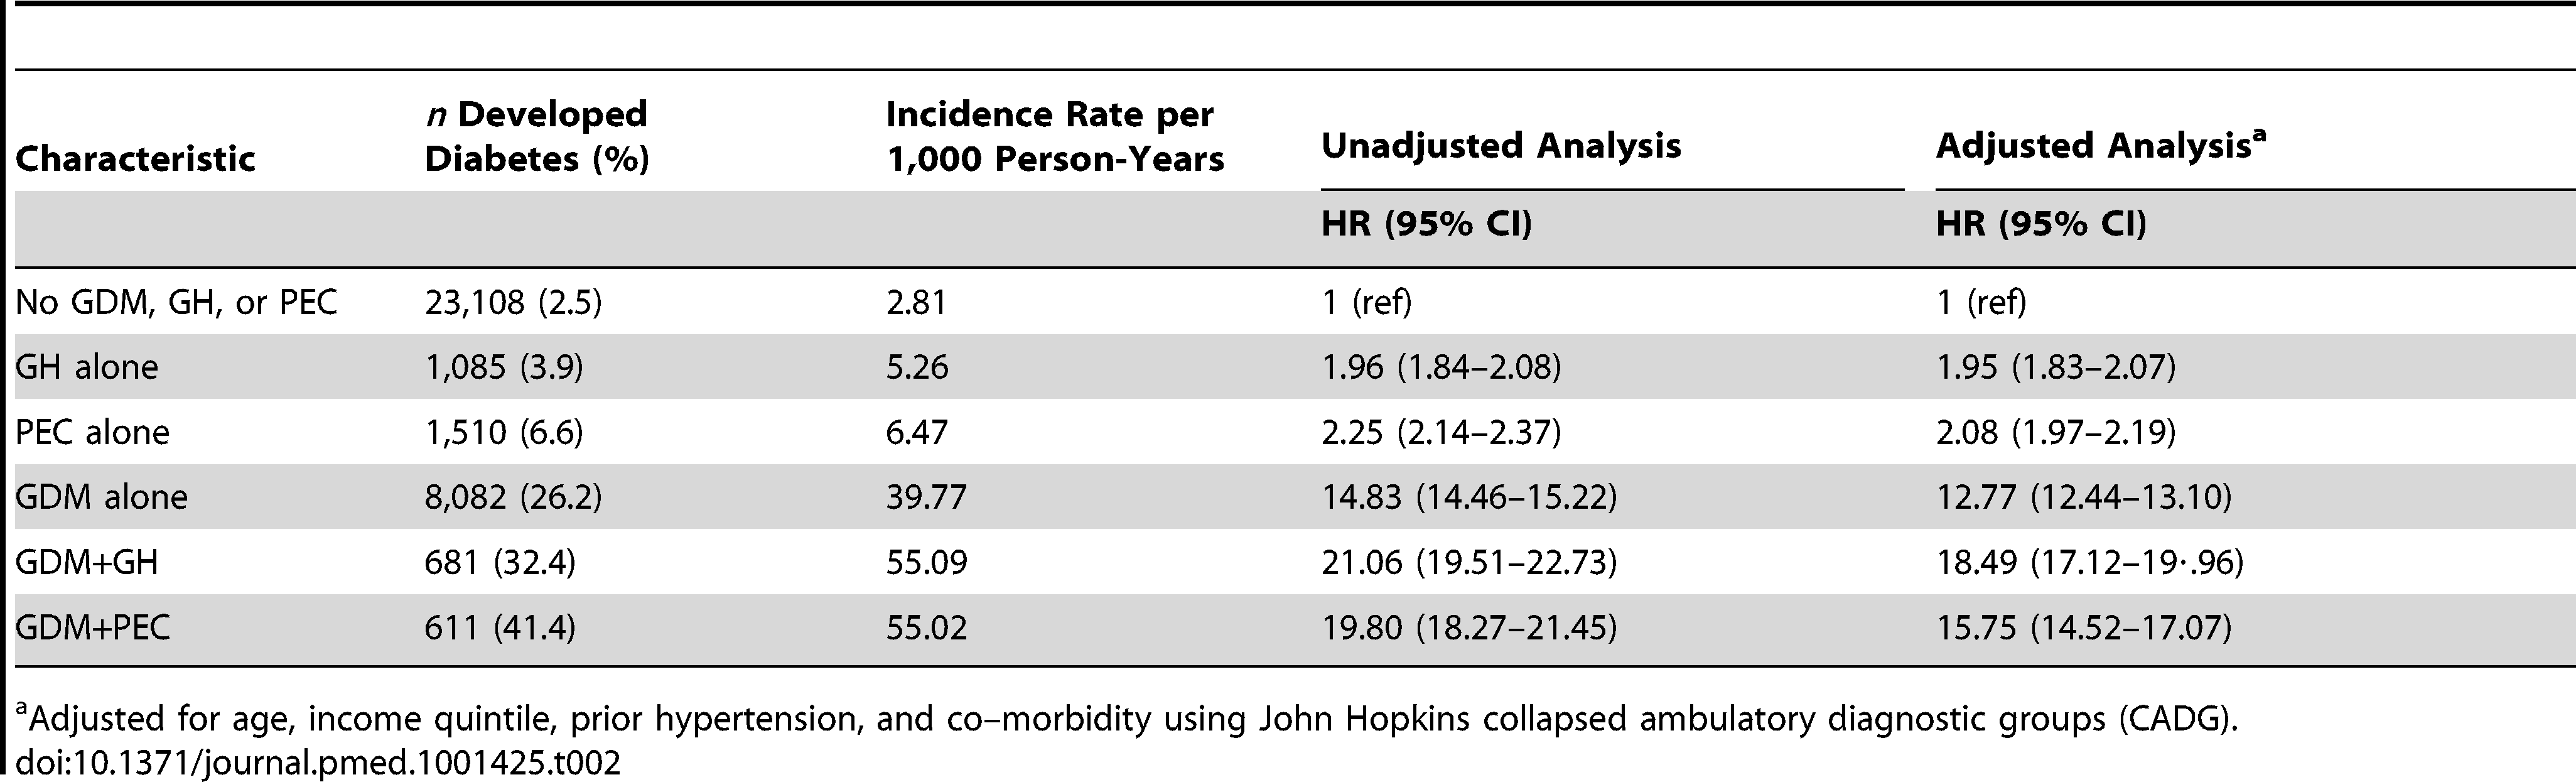 Multivariable Cox proportional hazards models evaluating the relationship among preeclampsia, gestational hypertension, and gestational diabetes in the development of diabetes.